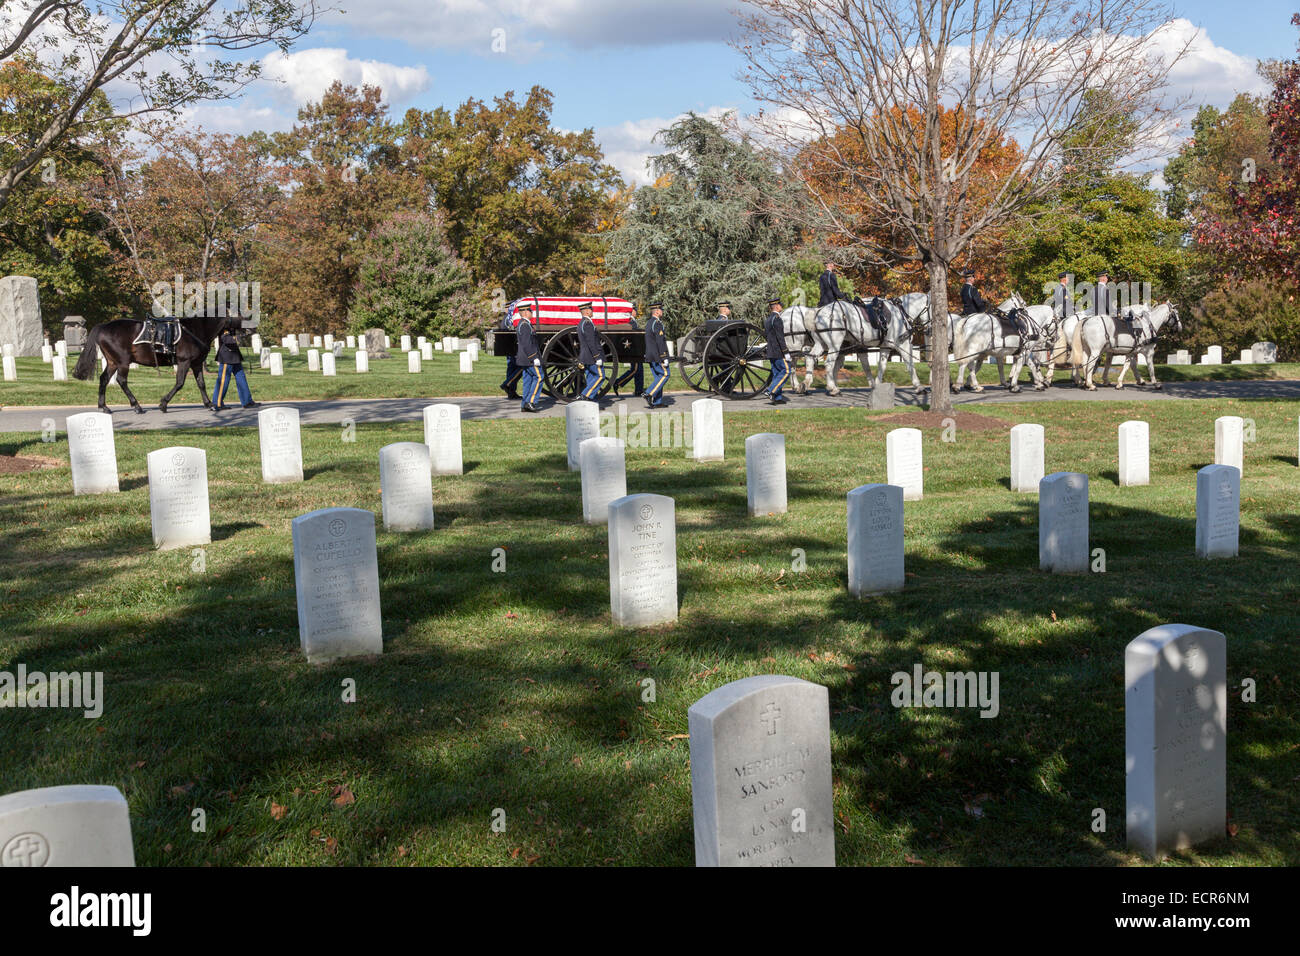 Funeral with military honors including riderless horse, Arlington National Cemetery, Virginia - Stock Image